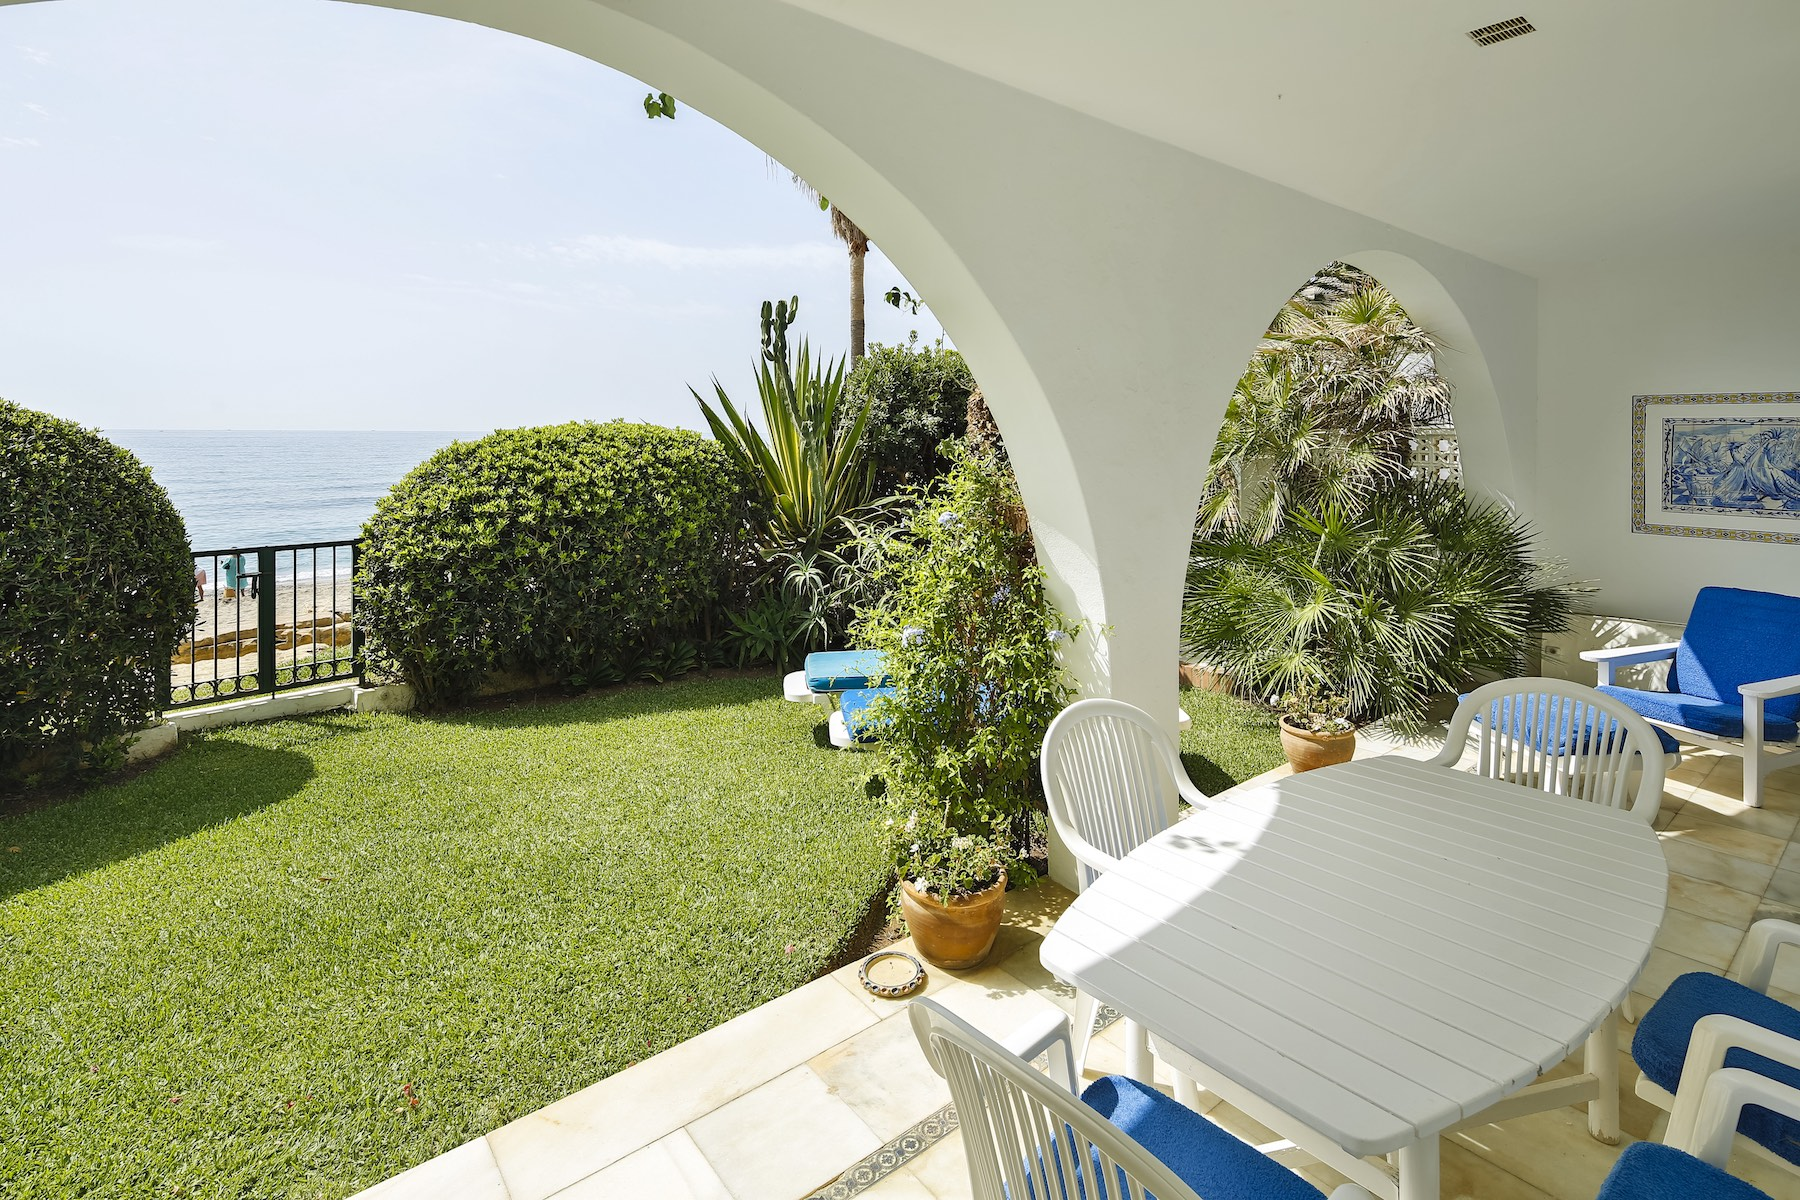 Частный односемейный дом для того Продажа на Beautiful three bedroom bungalow situated on the beach along the prestigious Gol Marbella, Андалусия, Испания